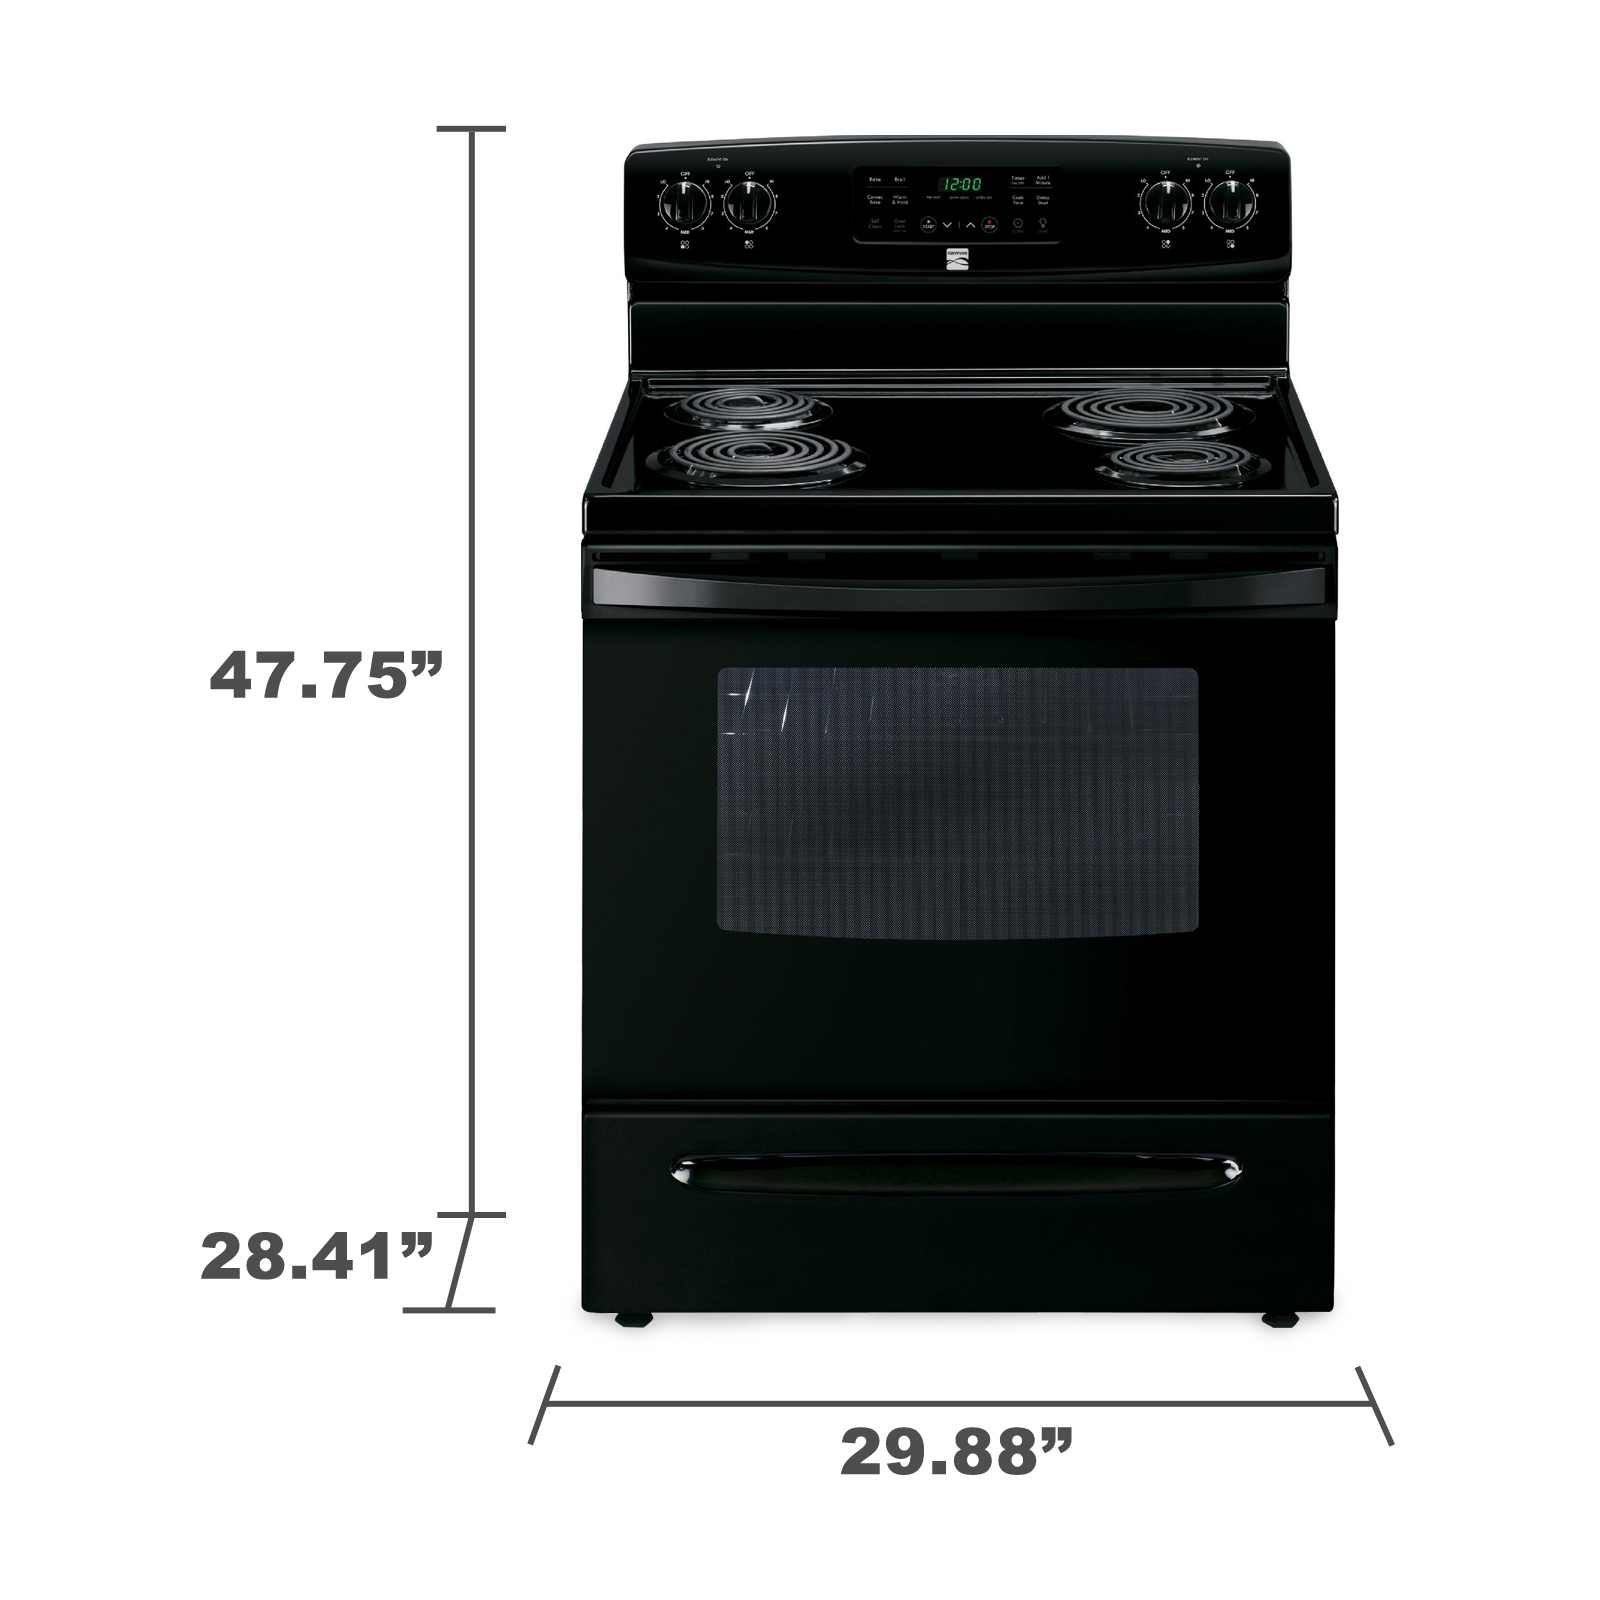 Kenmore 94159 5.4 cu. ft. Self-Cleaning Electric Range w / Convection Oven - Black